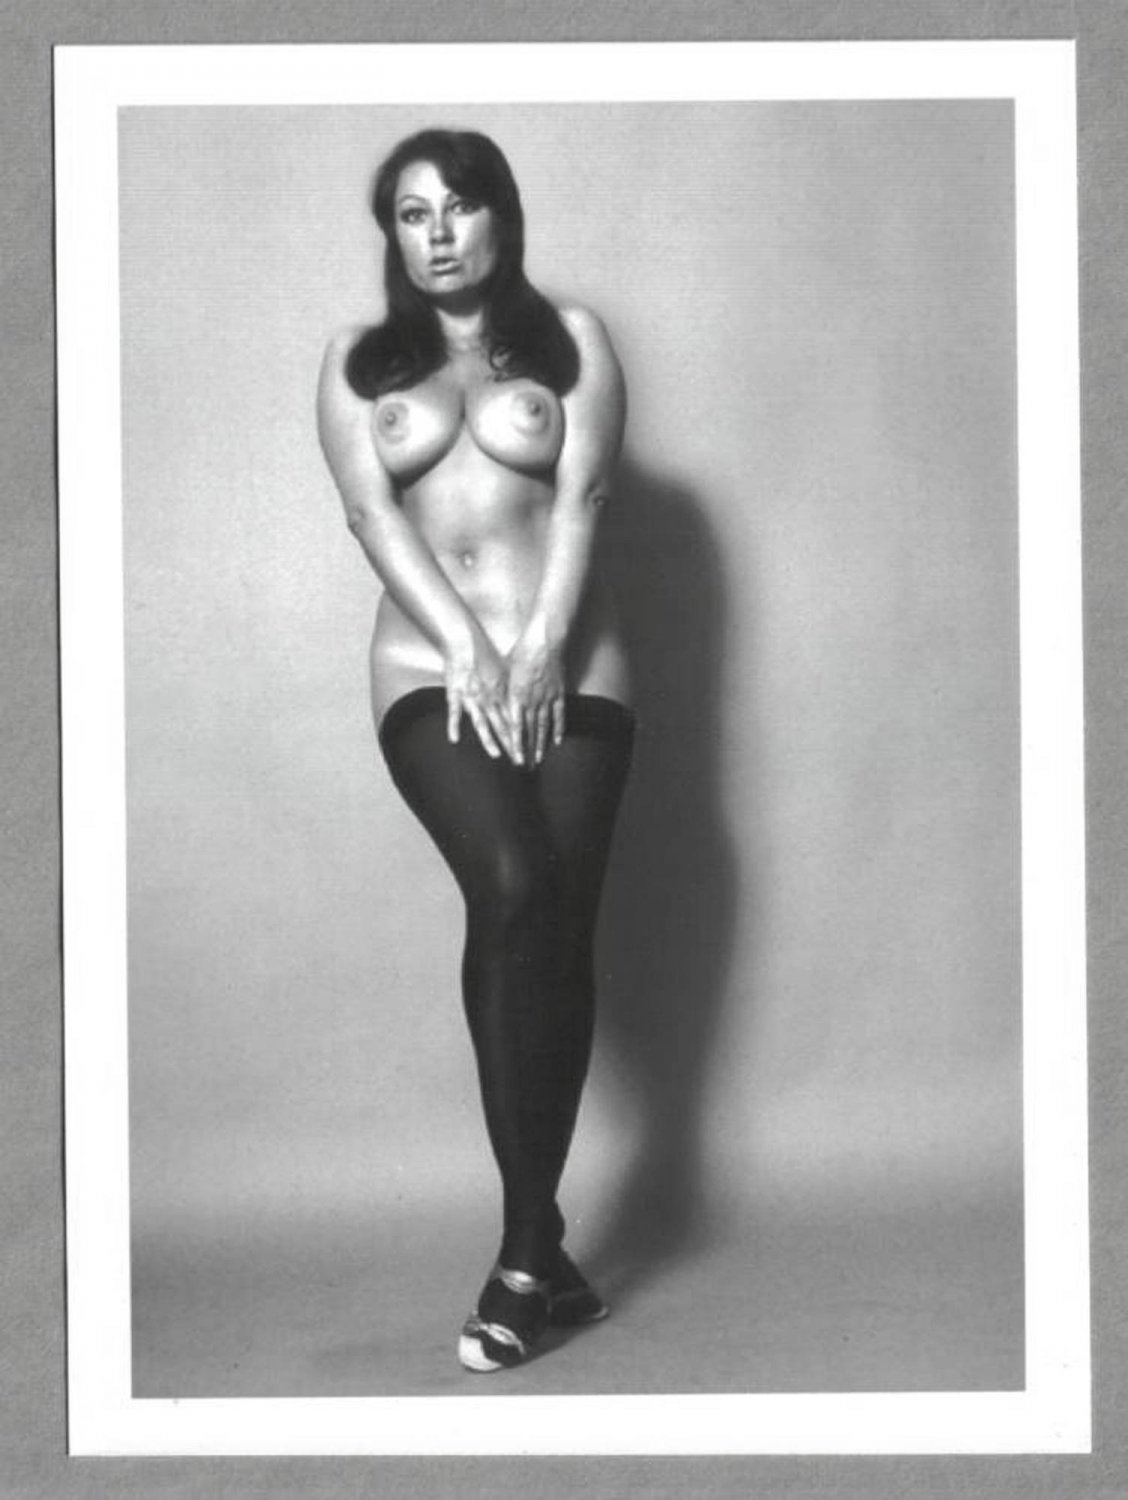 JUNE PALMER TOPLESS NUDE NEW REPRINT PHOTO 5X7 #185